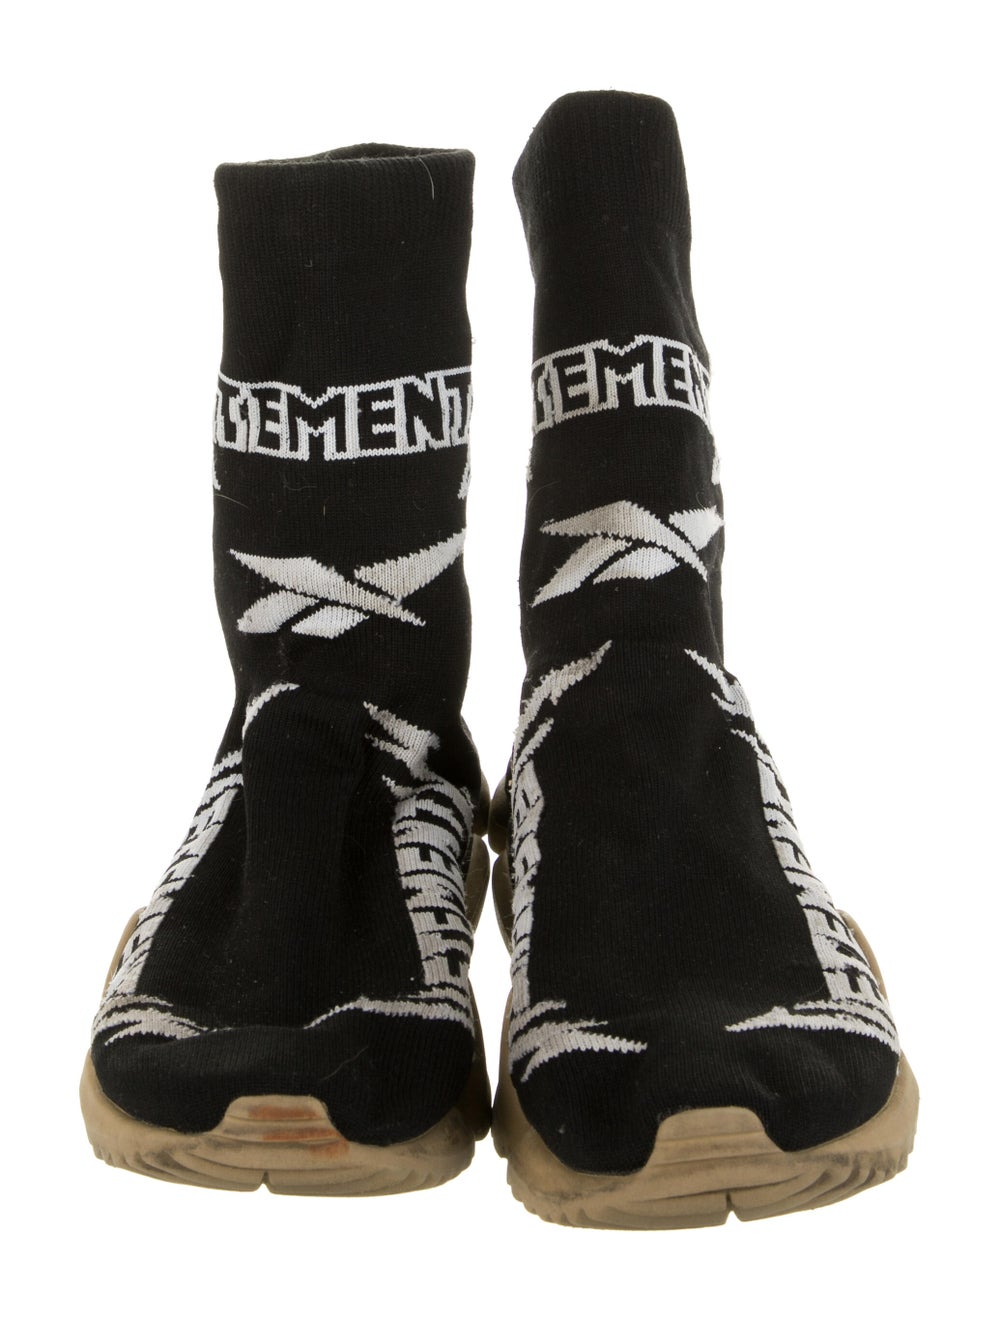 Vetements x Reebok Knit Sock Sneakers Black - image 3